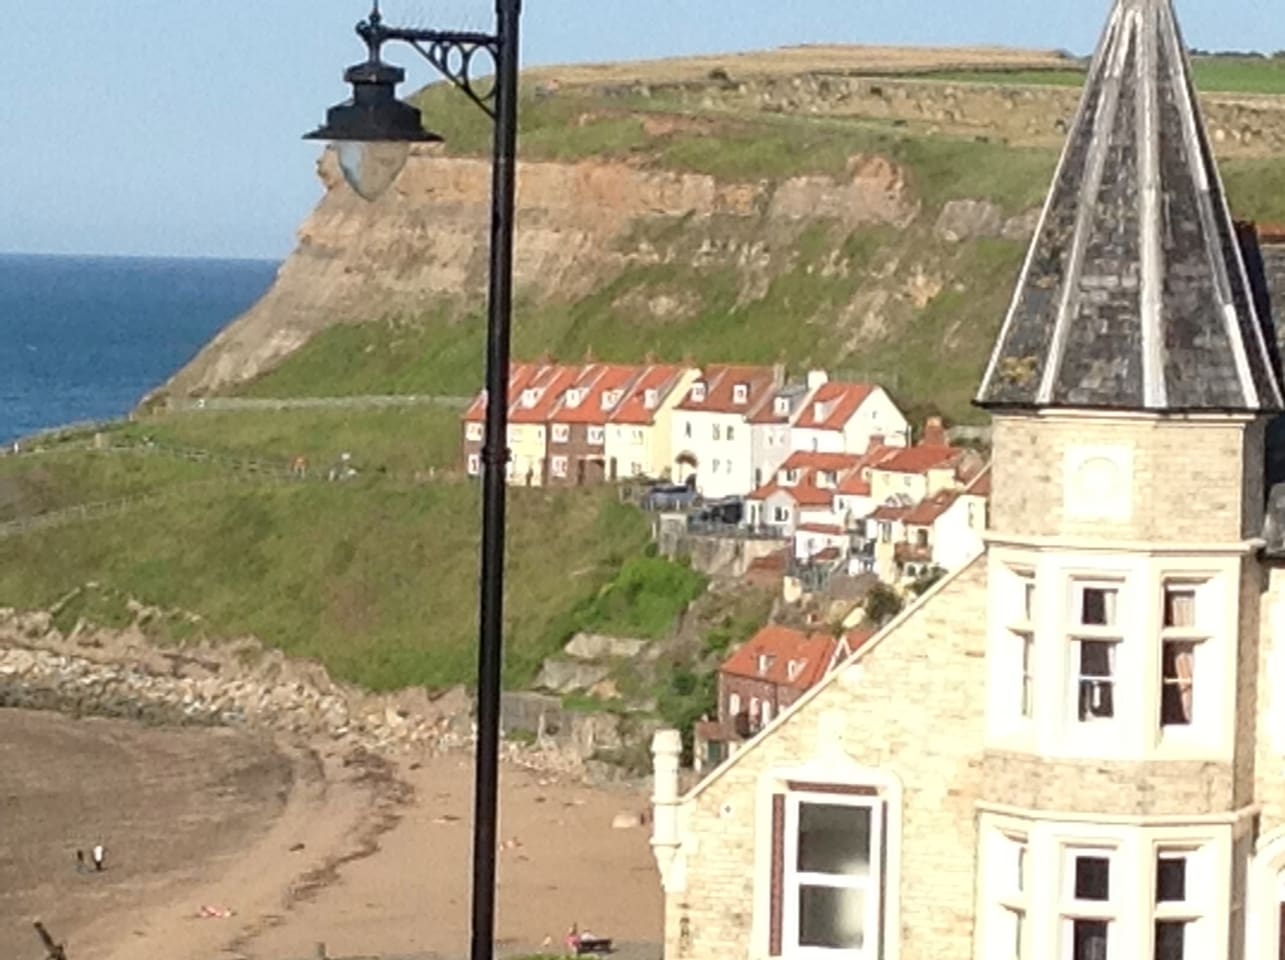 Great view across the beach and harbour towards the abbey.